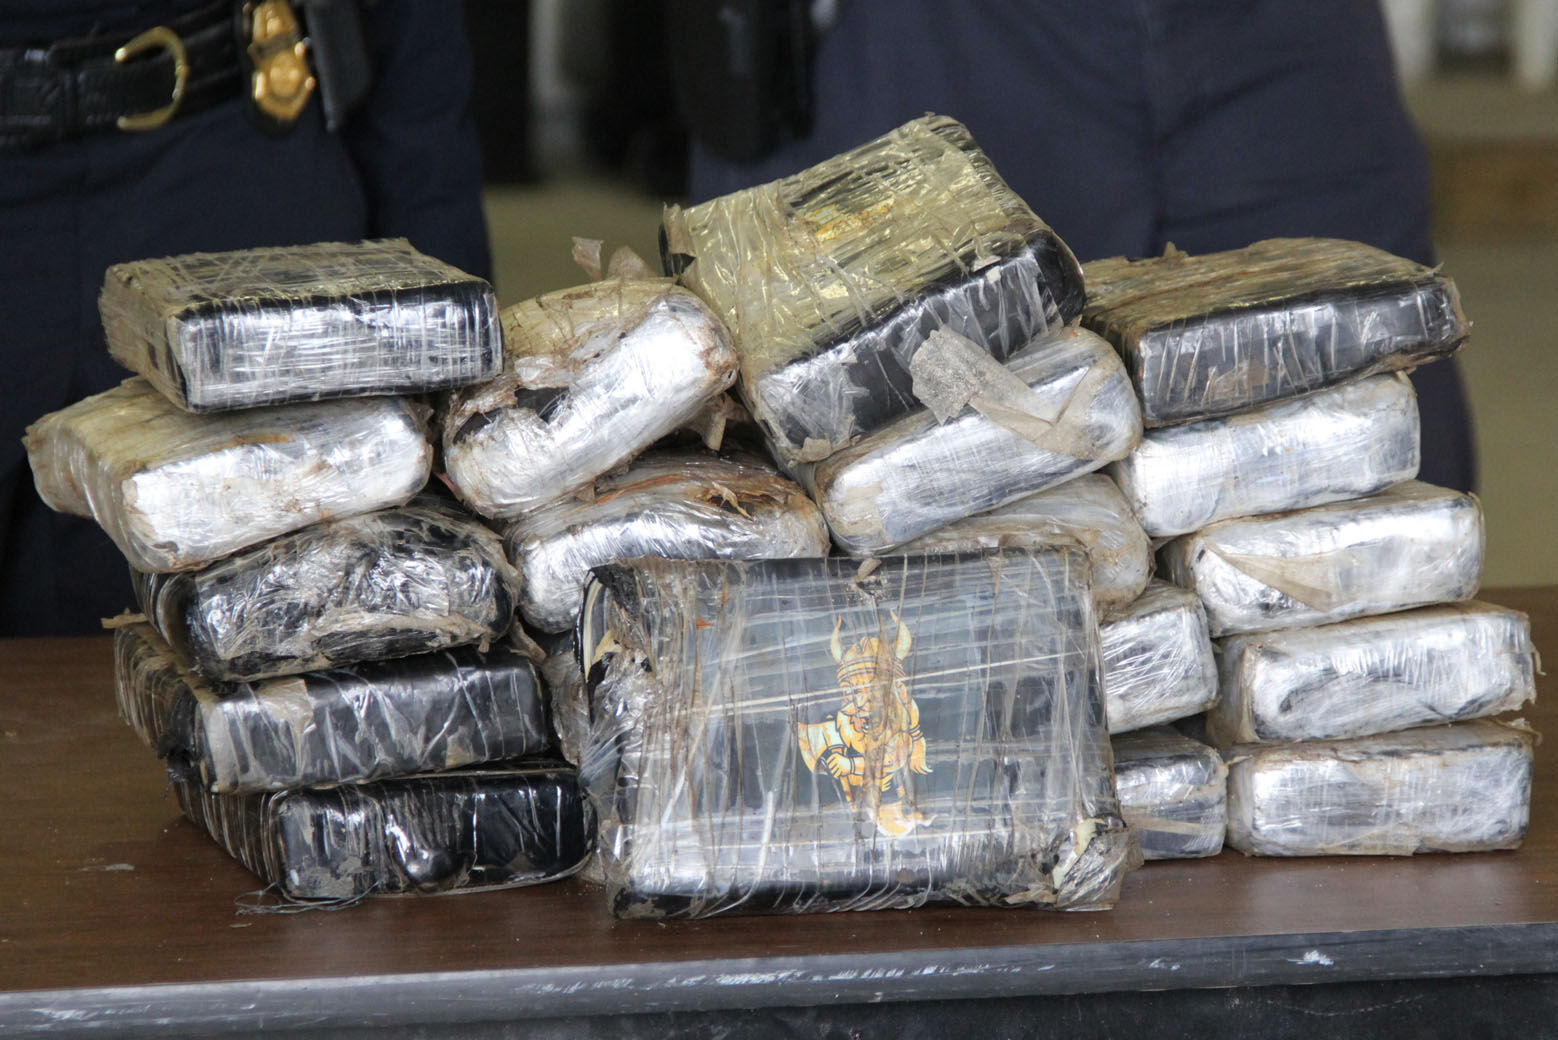 Over $1 million in cocaine seized during ship inspection near Annapolis | WTOP